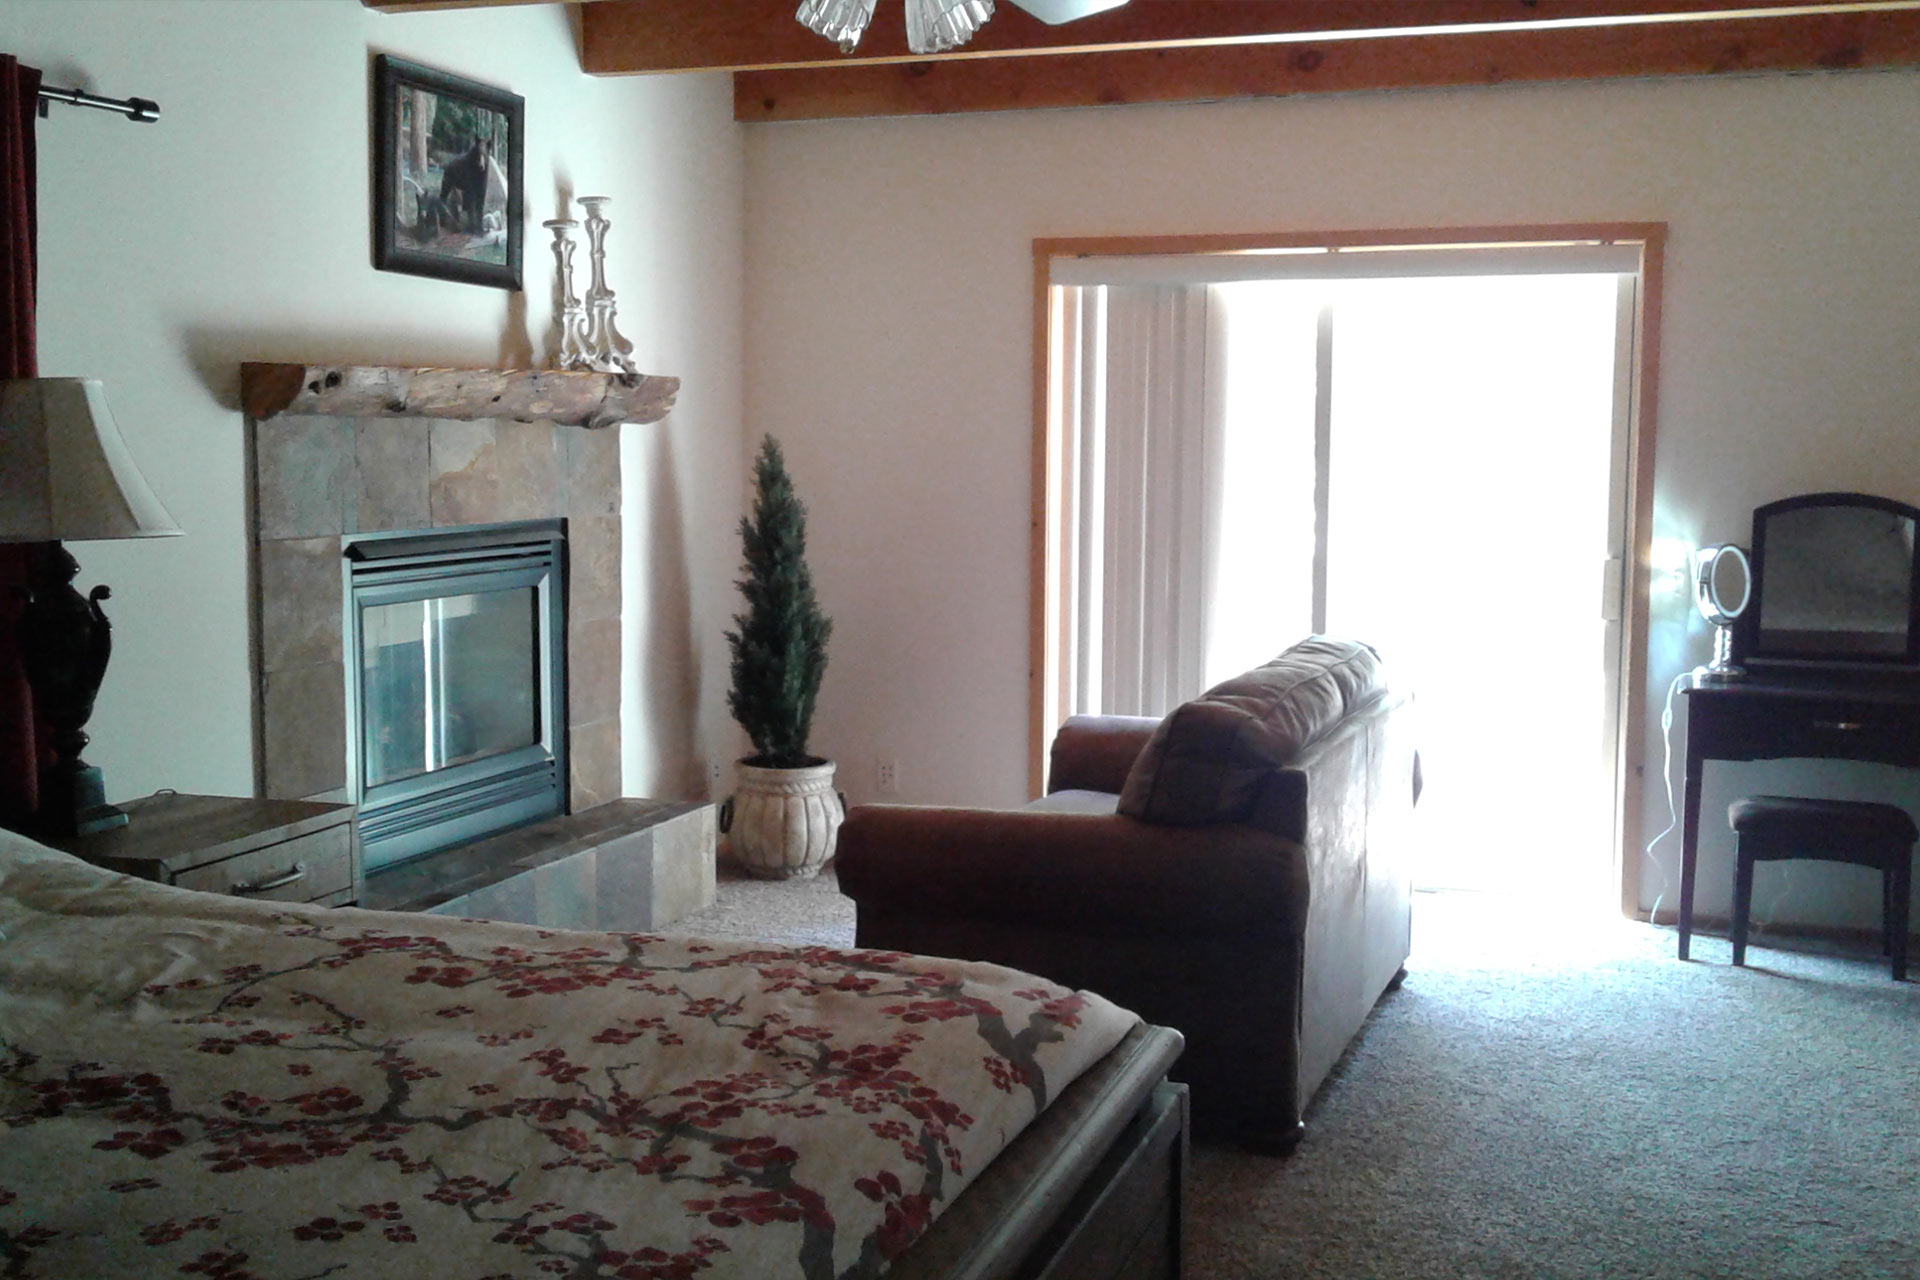 Master bedroom with fireplace at the residence